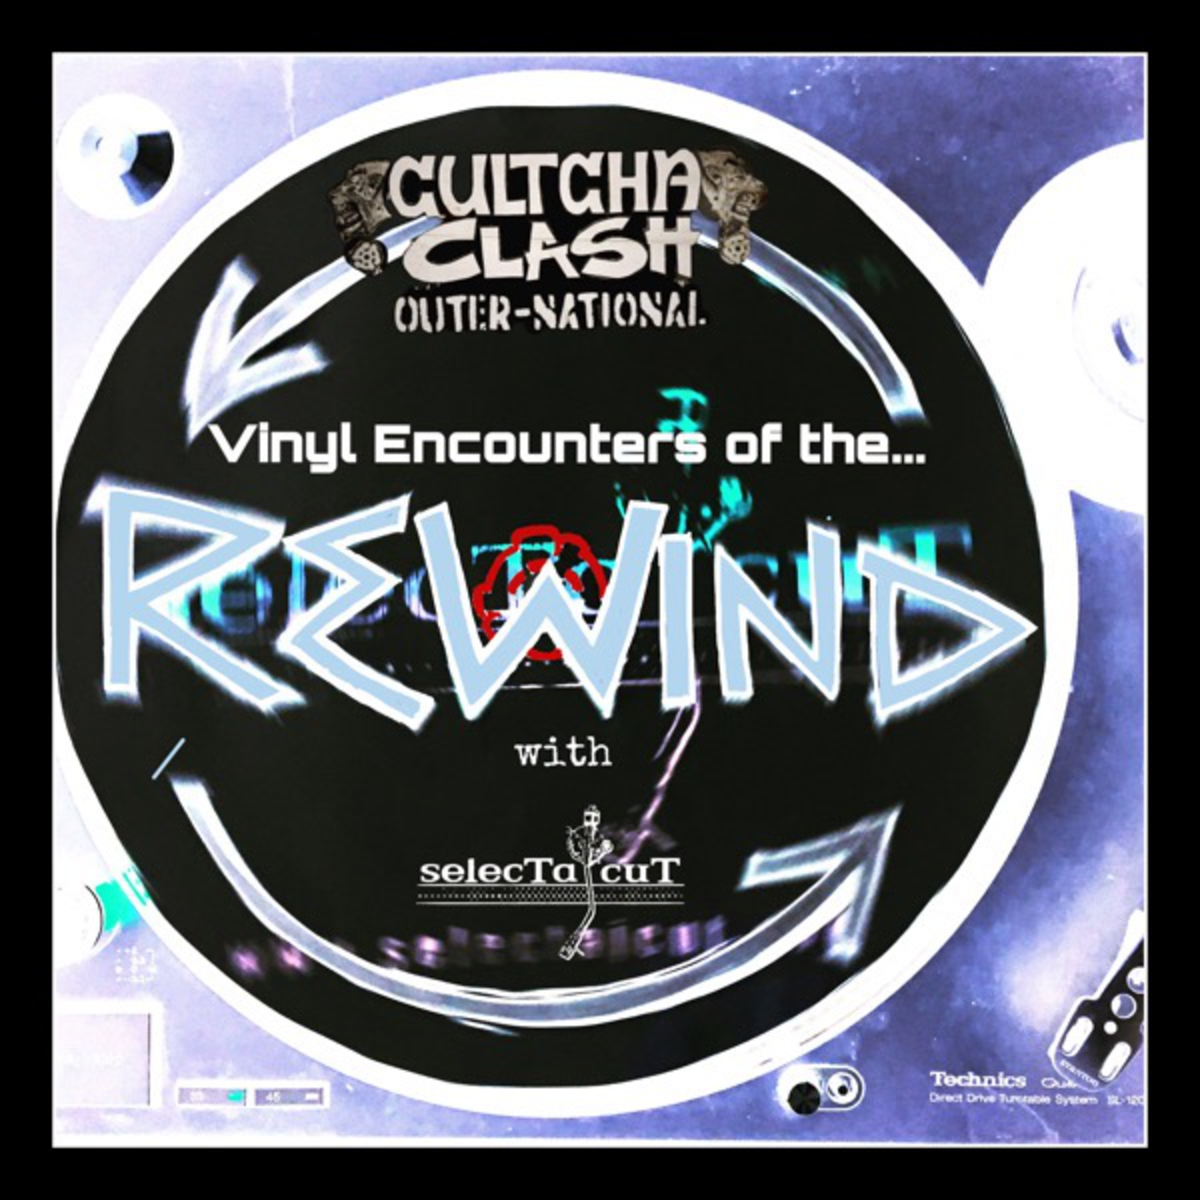 Vinyl Encounters of the... Rewind!